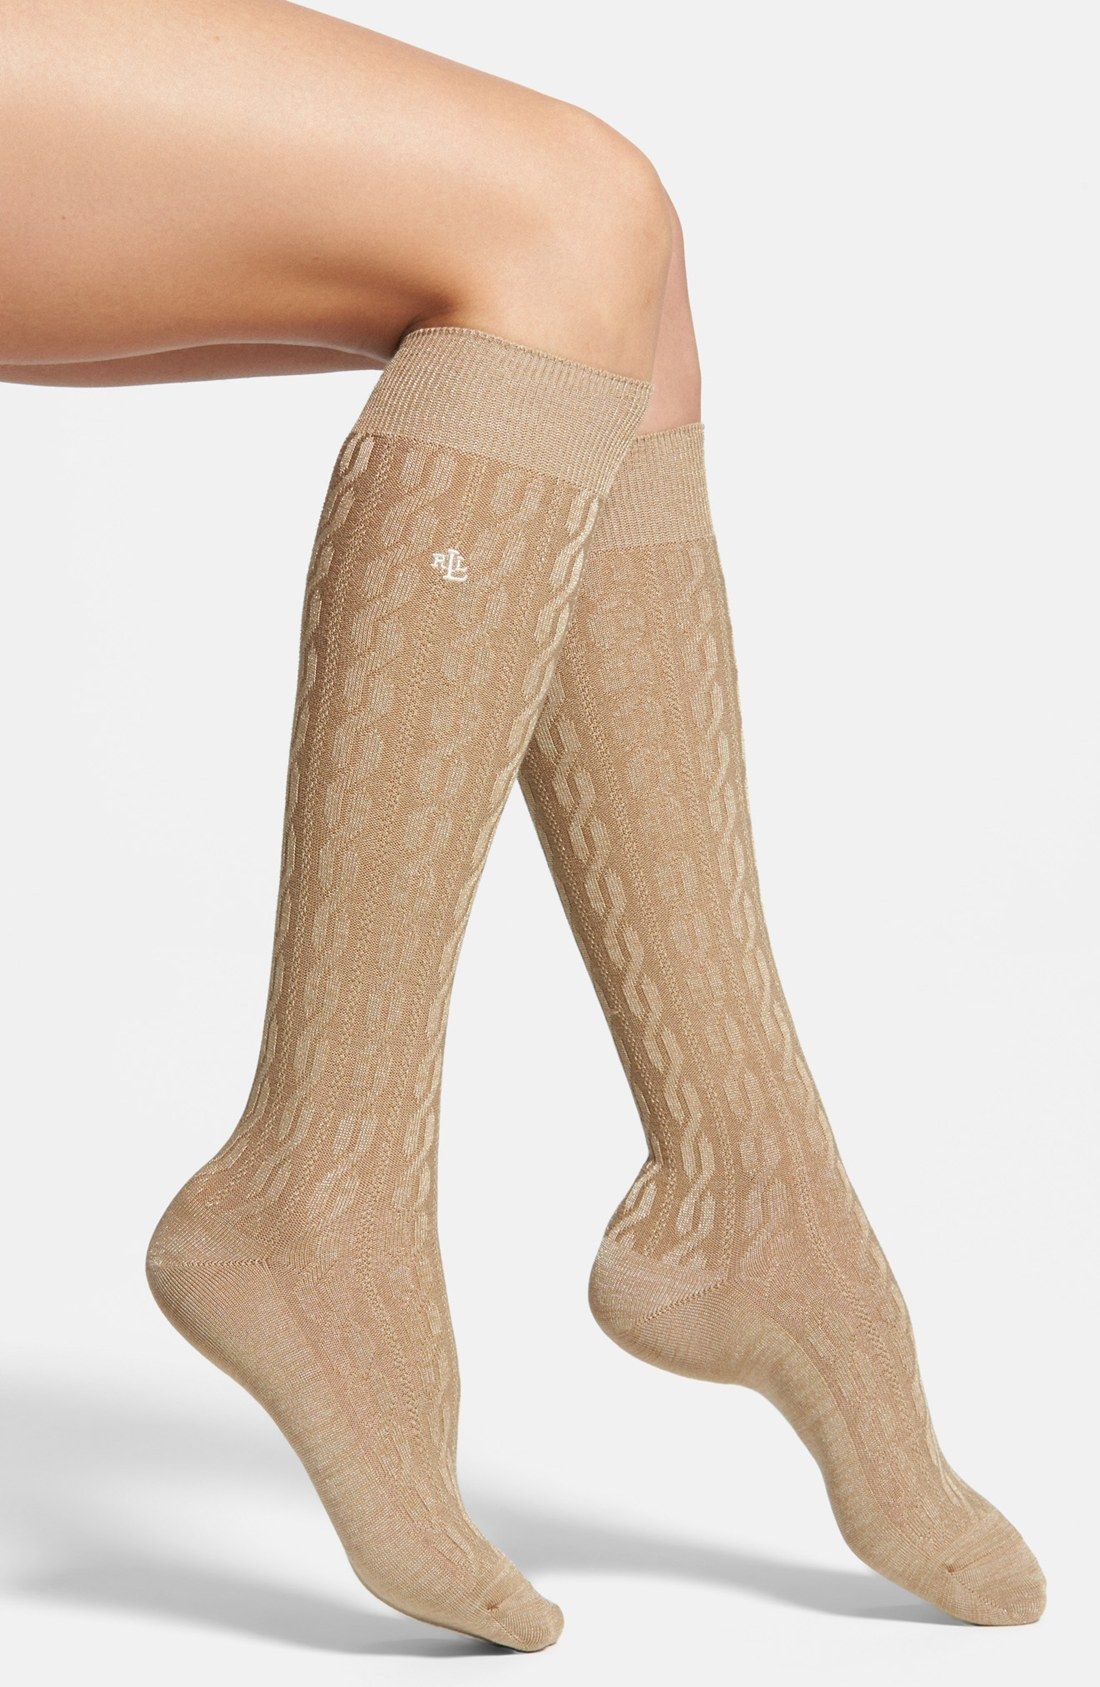 Sock Knitting Patterns. Keep those toes toasty! Explore our colossal range of sock knitting patterns! From iconic Regia and Cascade to bespoke designs from independent designers, knit snuggly socks, slippers and leg warmers that will certainly put a spring in your step!94%(K).